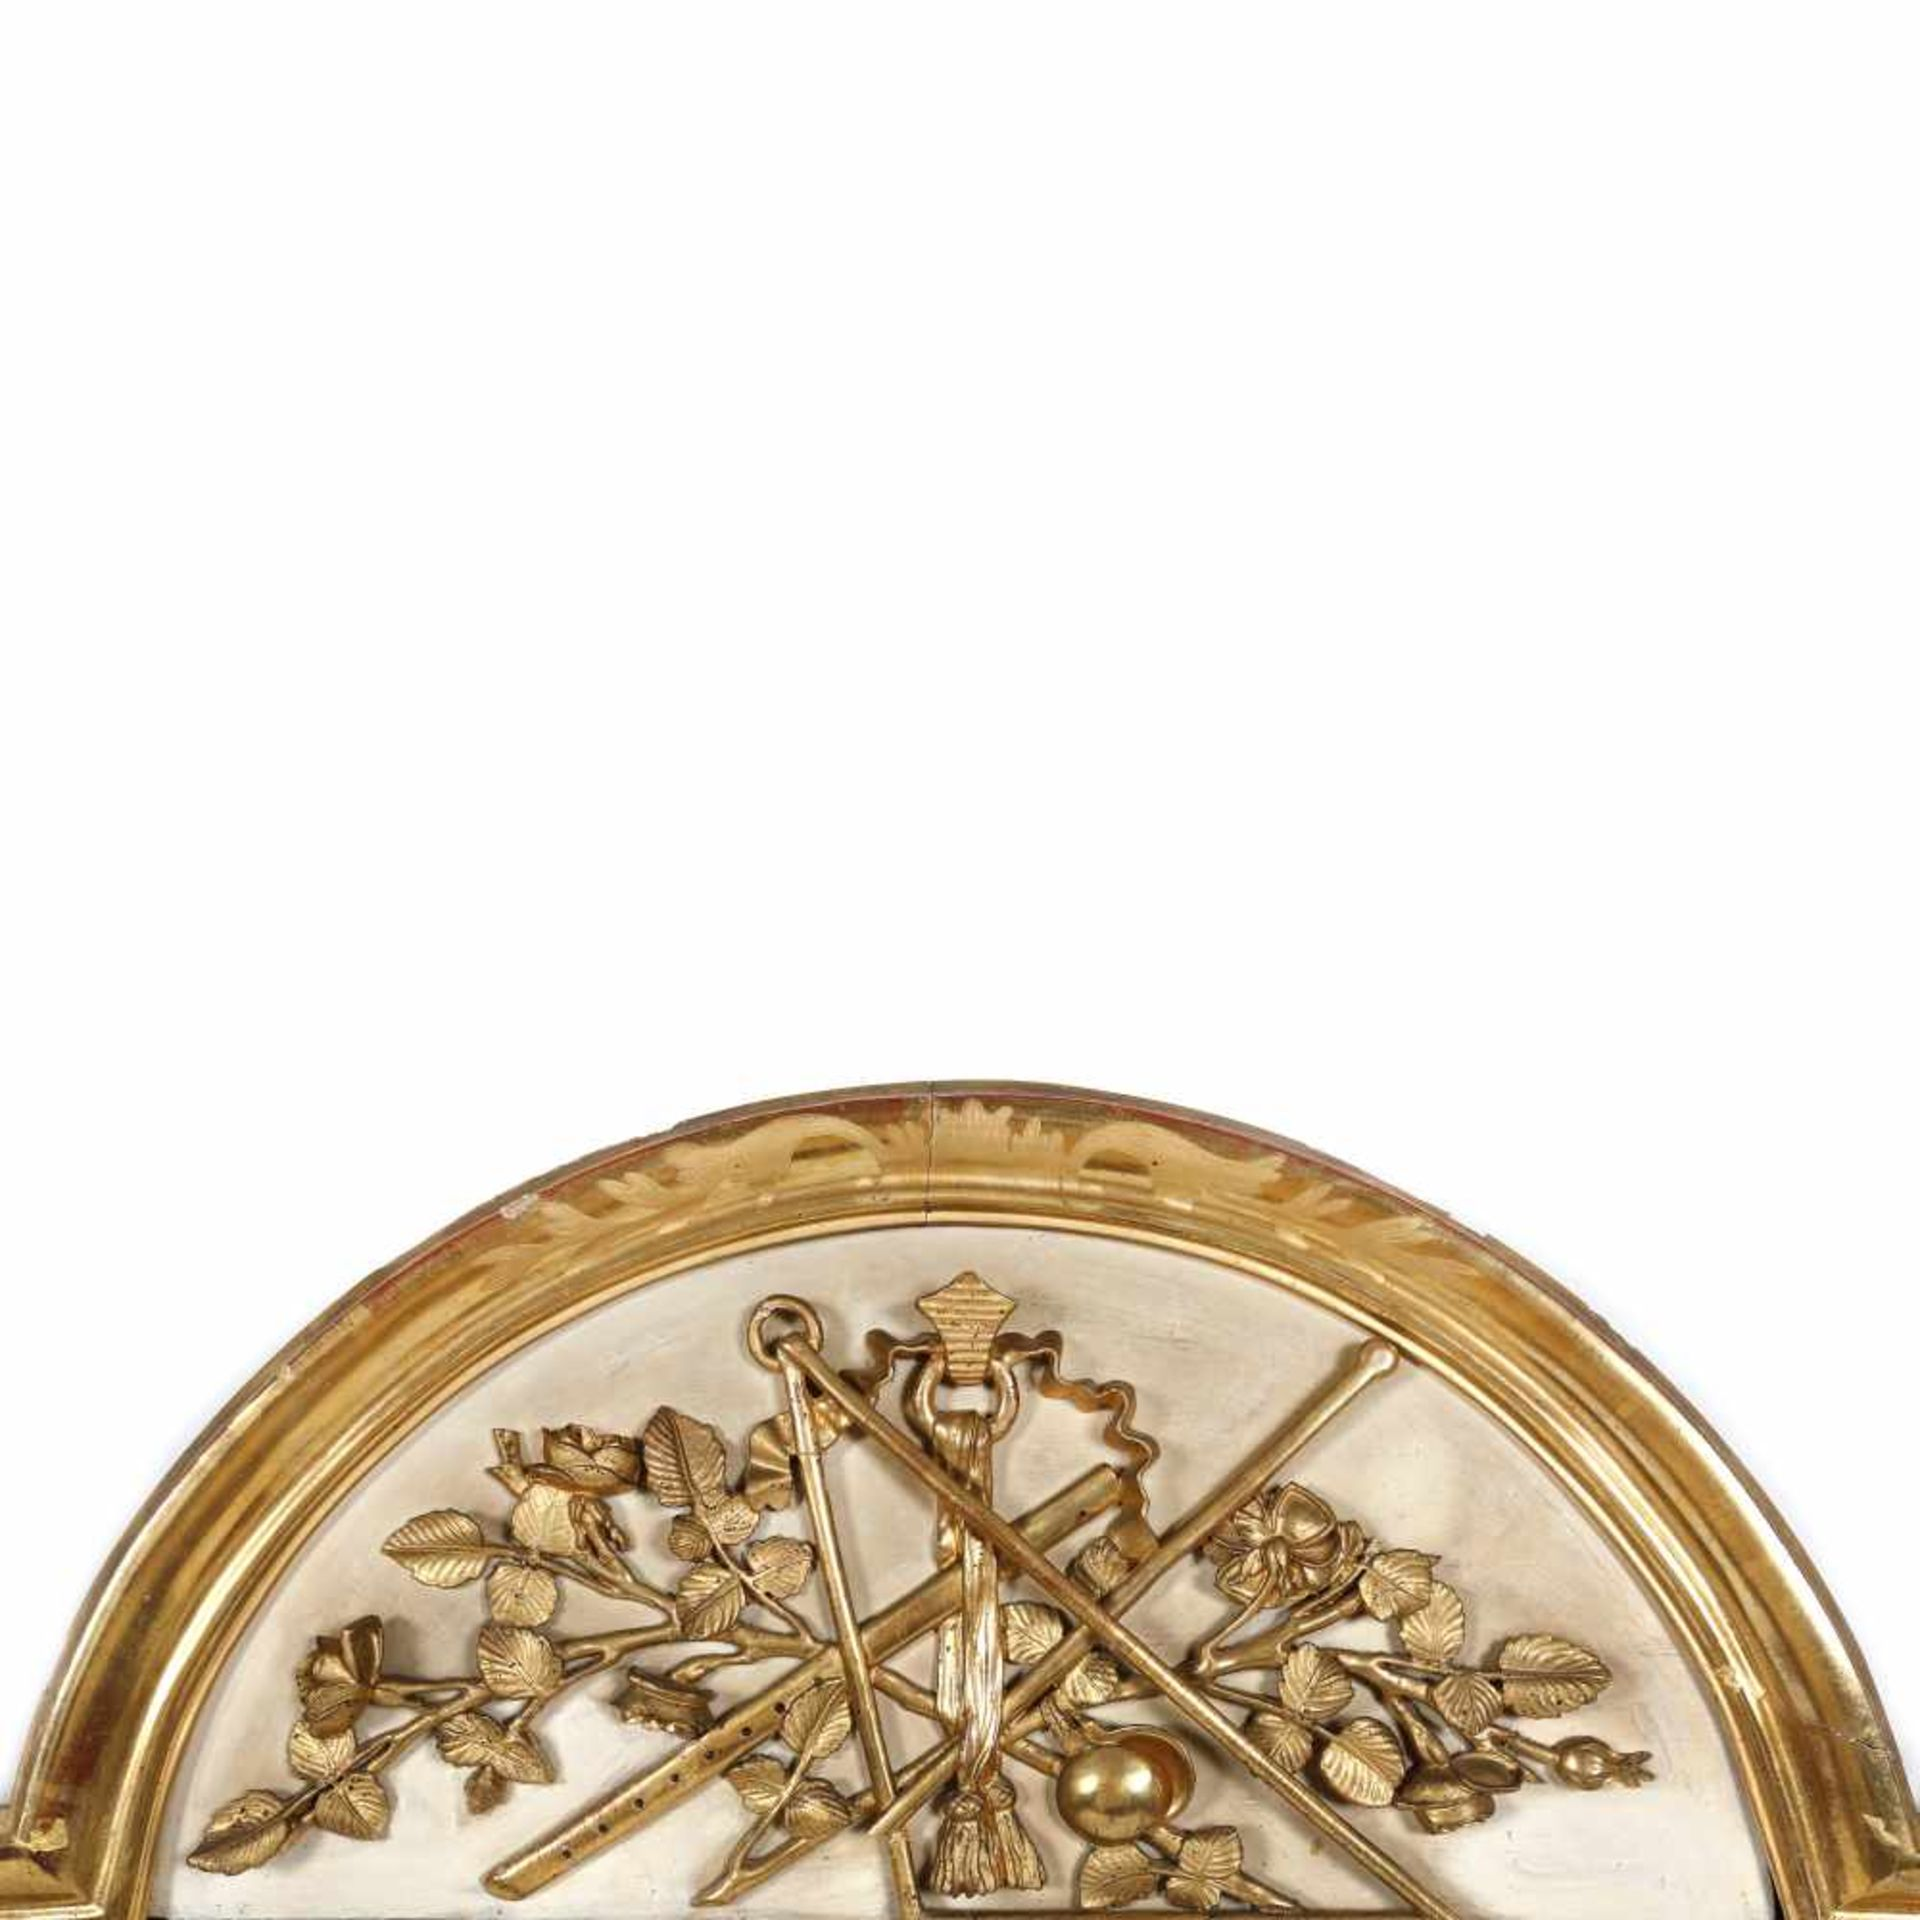 Louis XVI style mirror, with medallion decorated with Masonic elements, early 20th century - Bild 2 aus 2